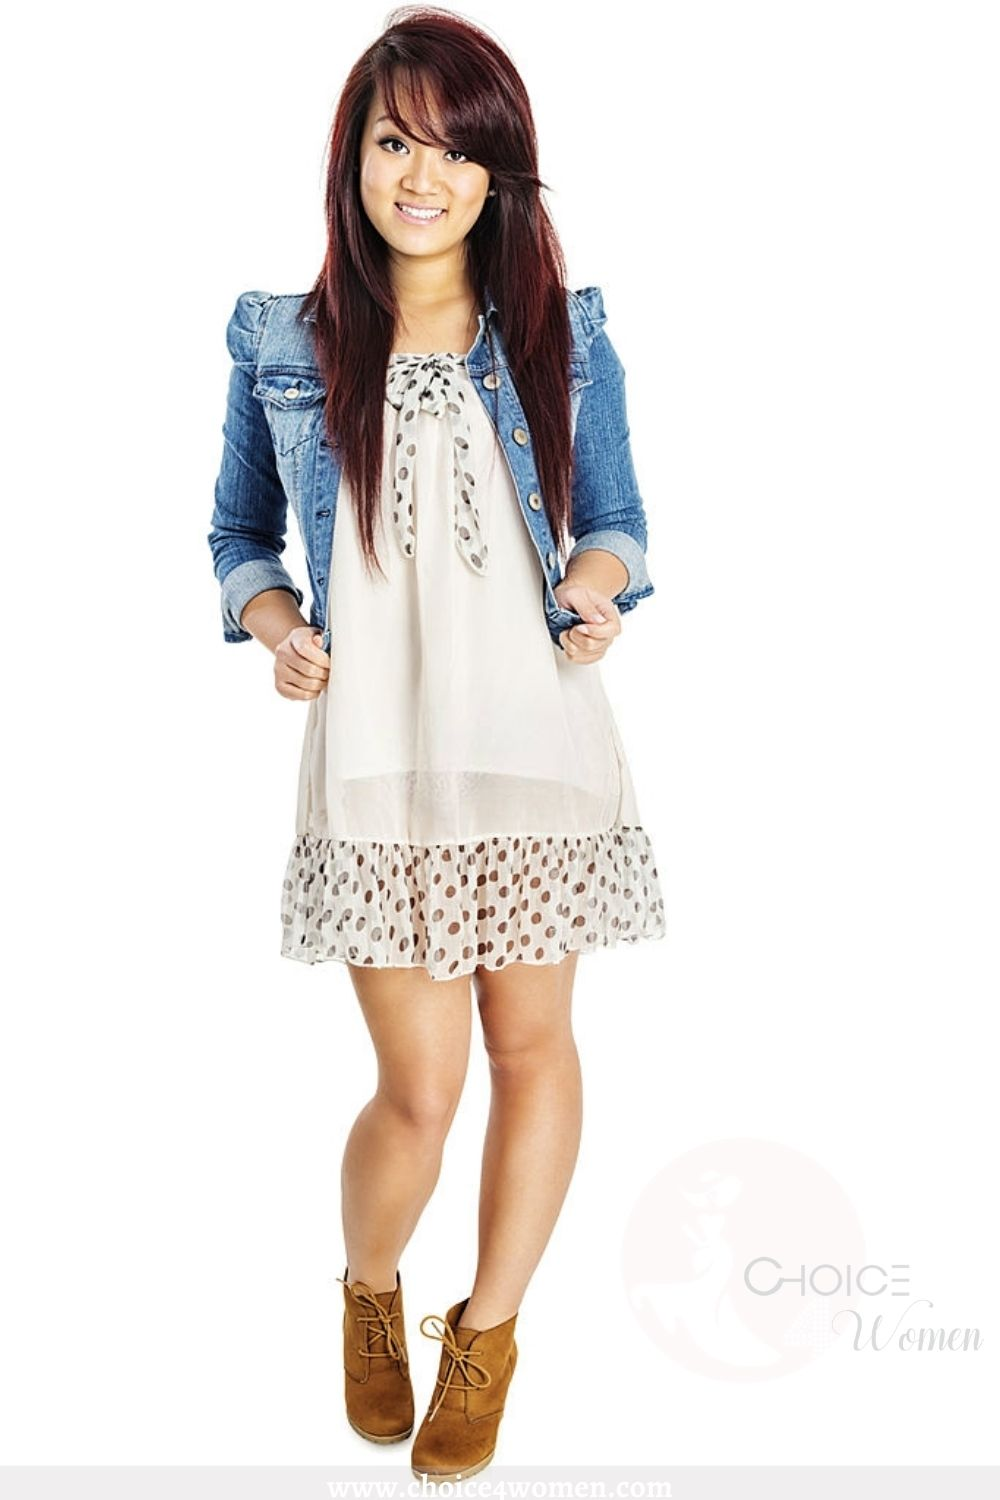 cute outfits for women with denim jacket